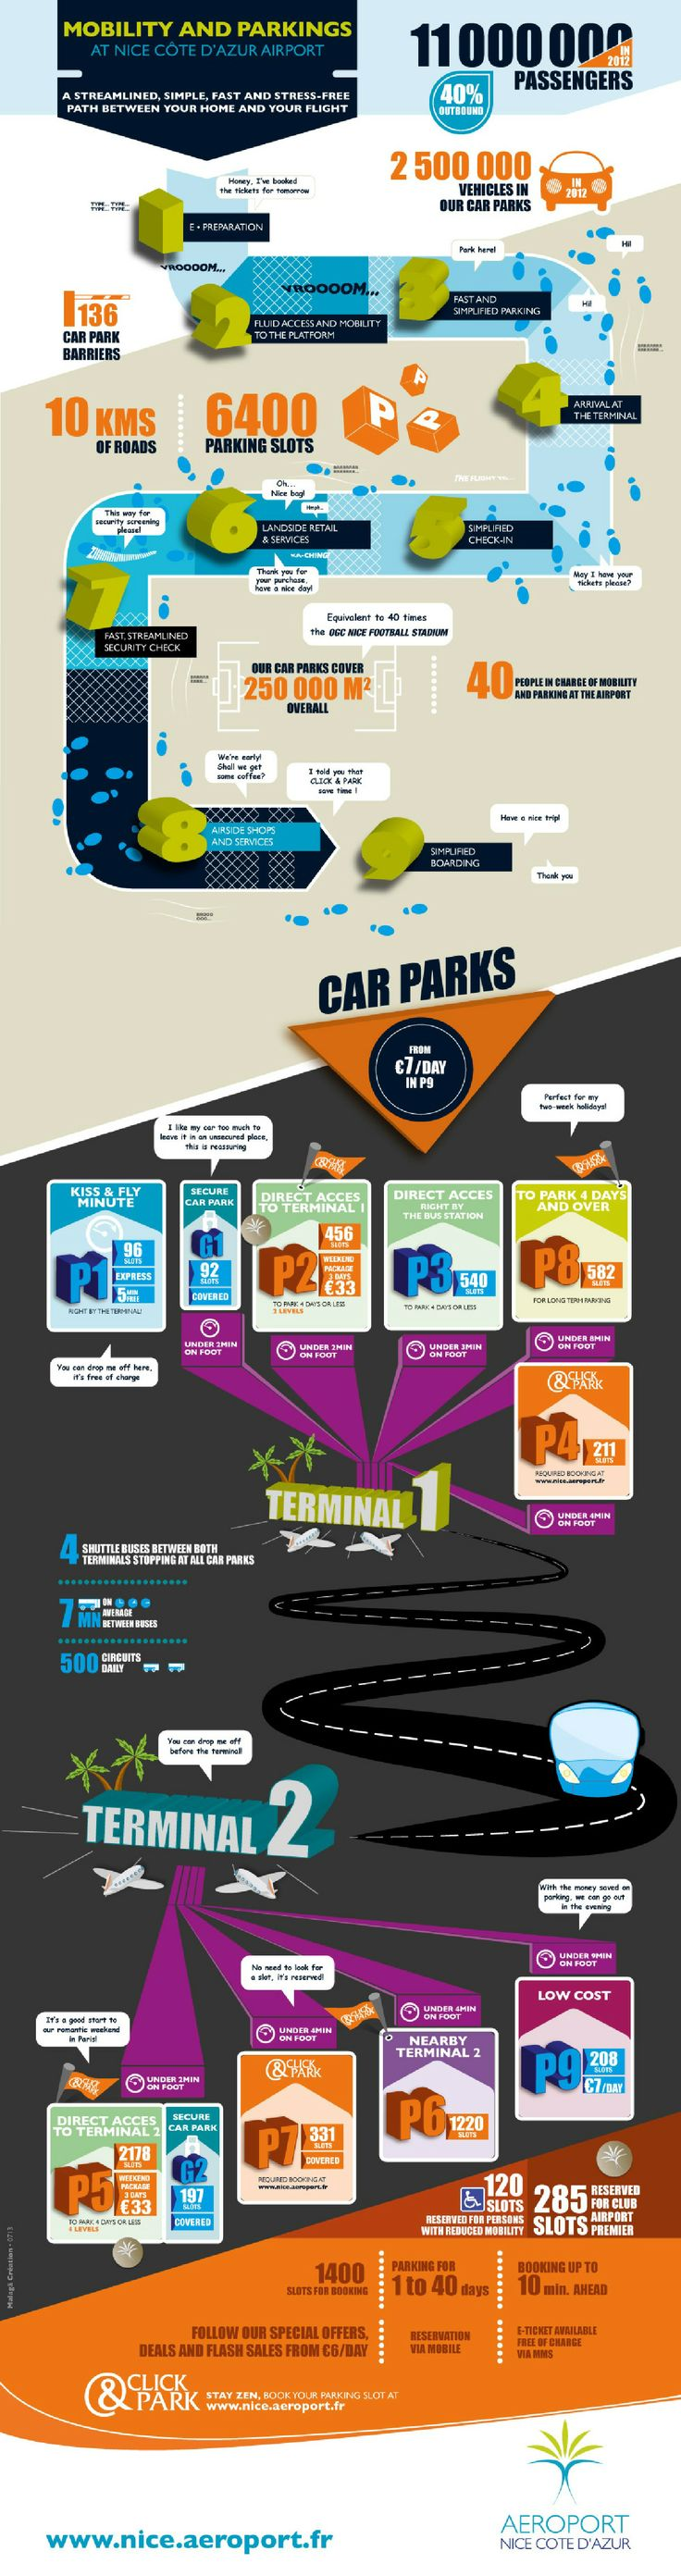 EVERYTHING YOU NEED TO KNOW ABOUT NICE AIRPORT CAR PARKS How many slots in the Nice Côte d'Azur airport car parks? How many free shuttle buses betw